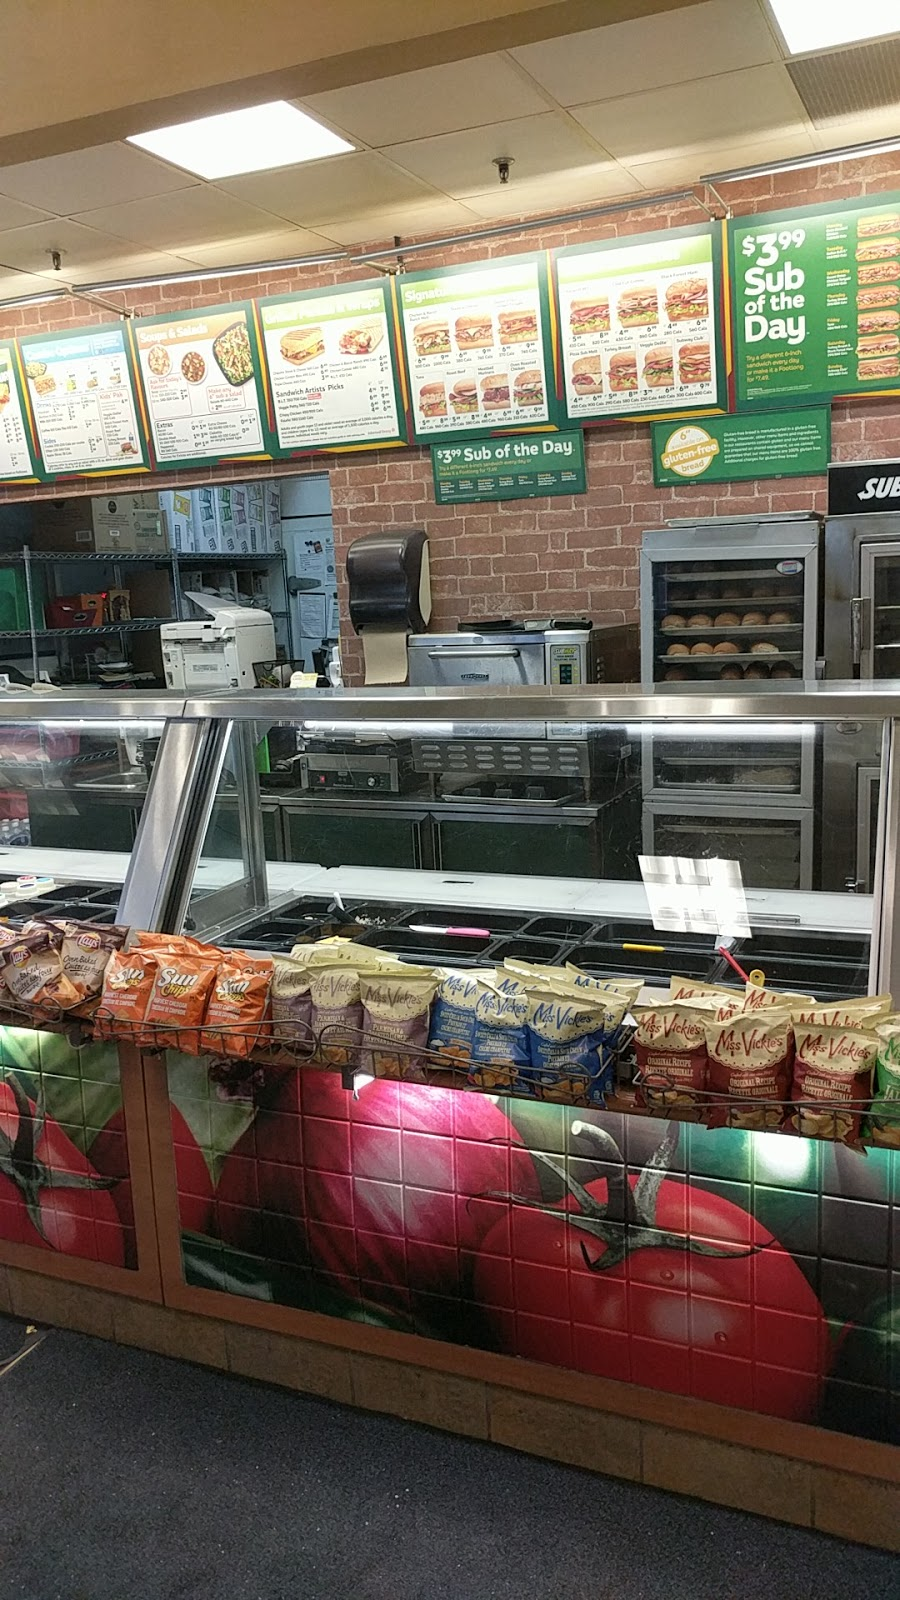 Subway   meal takeaway   2458 Dundas St W, Mississauga, ON L5K 1R8, Canada   9058223664 OR +1 905-822-3664